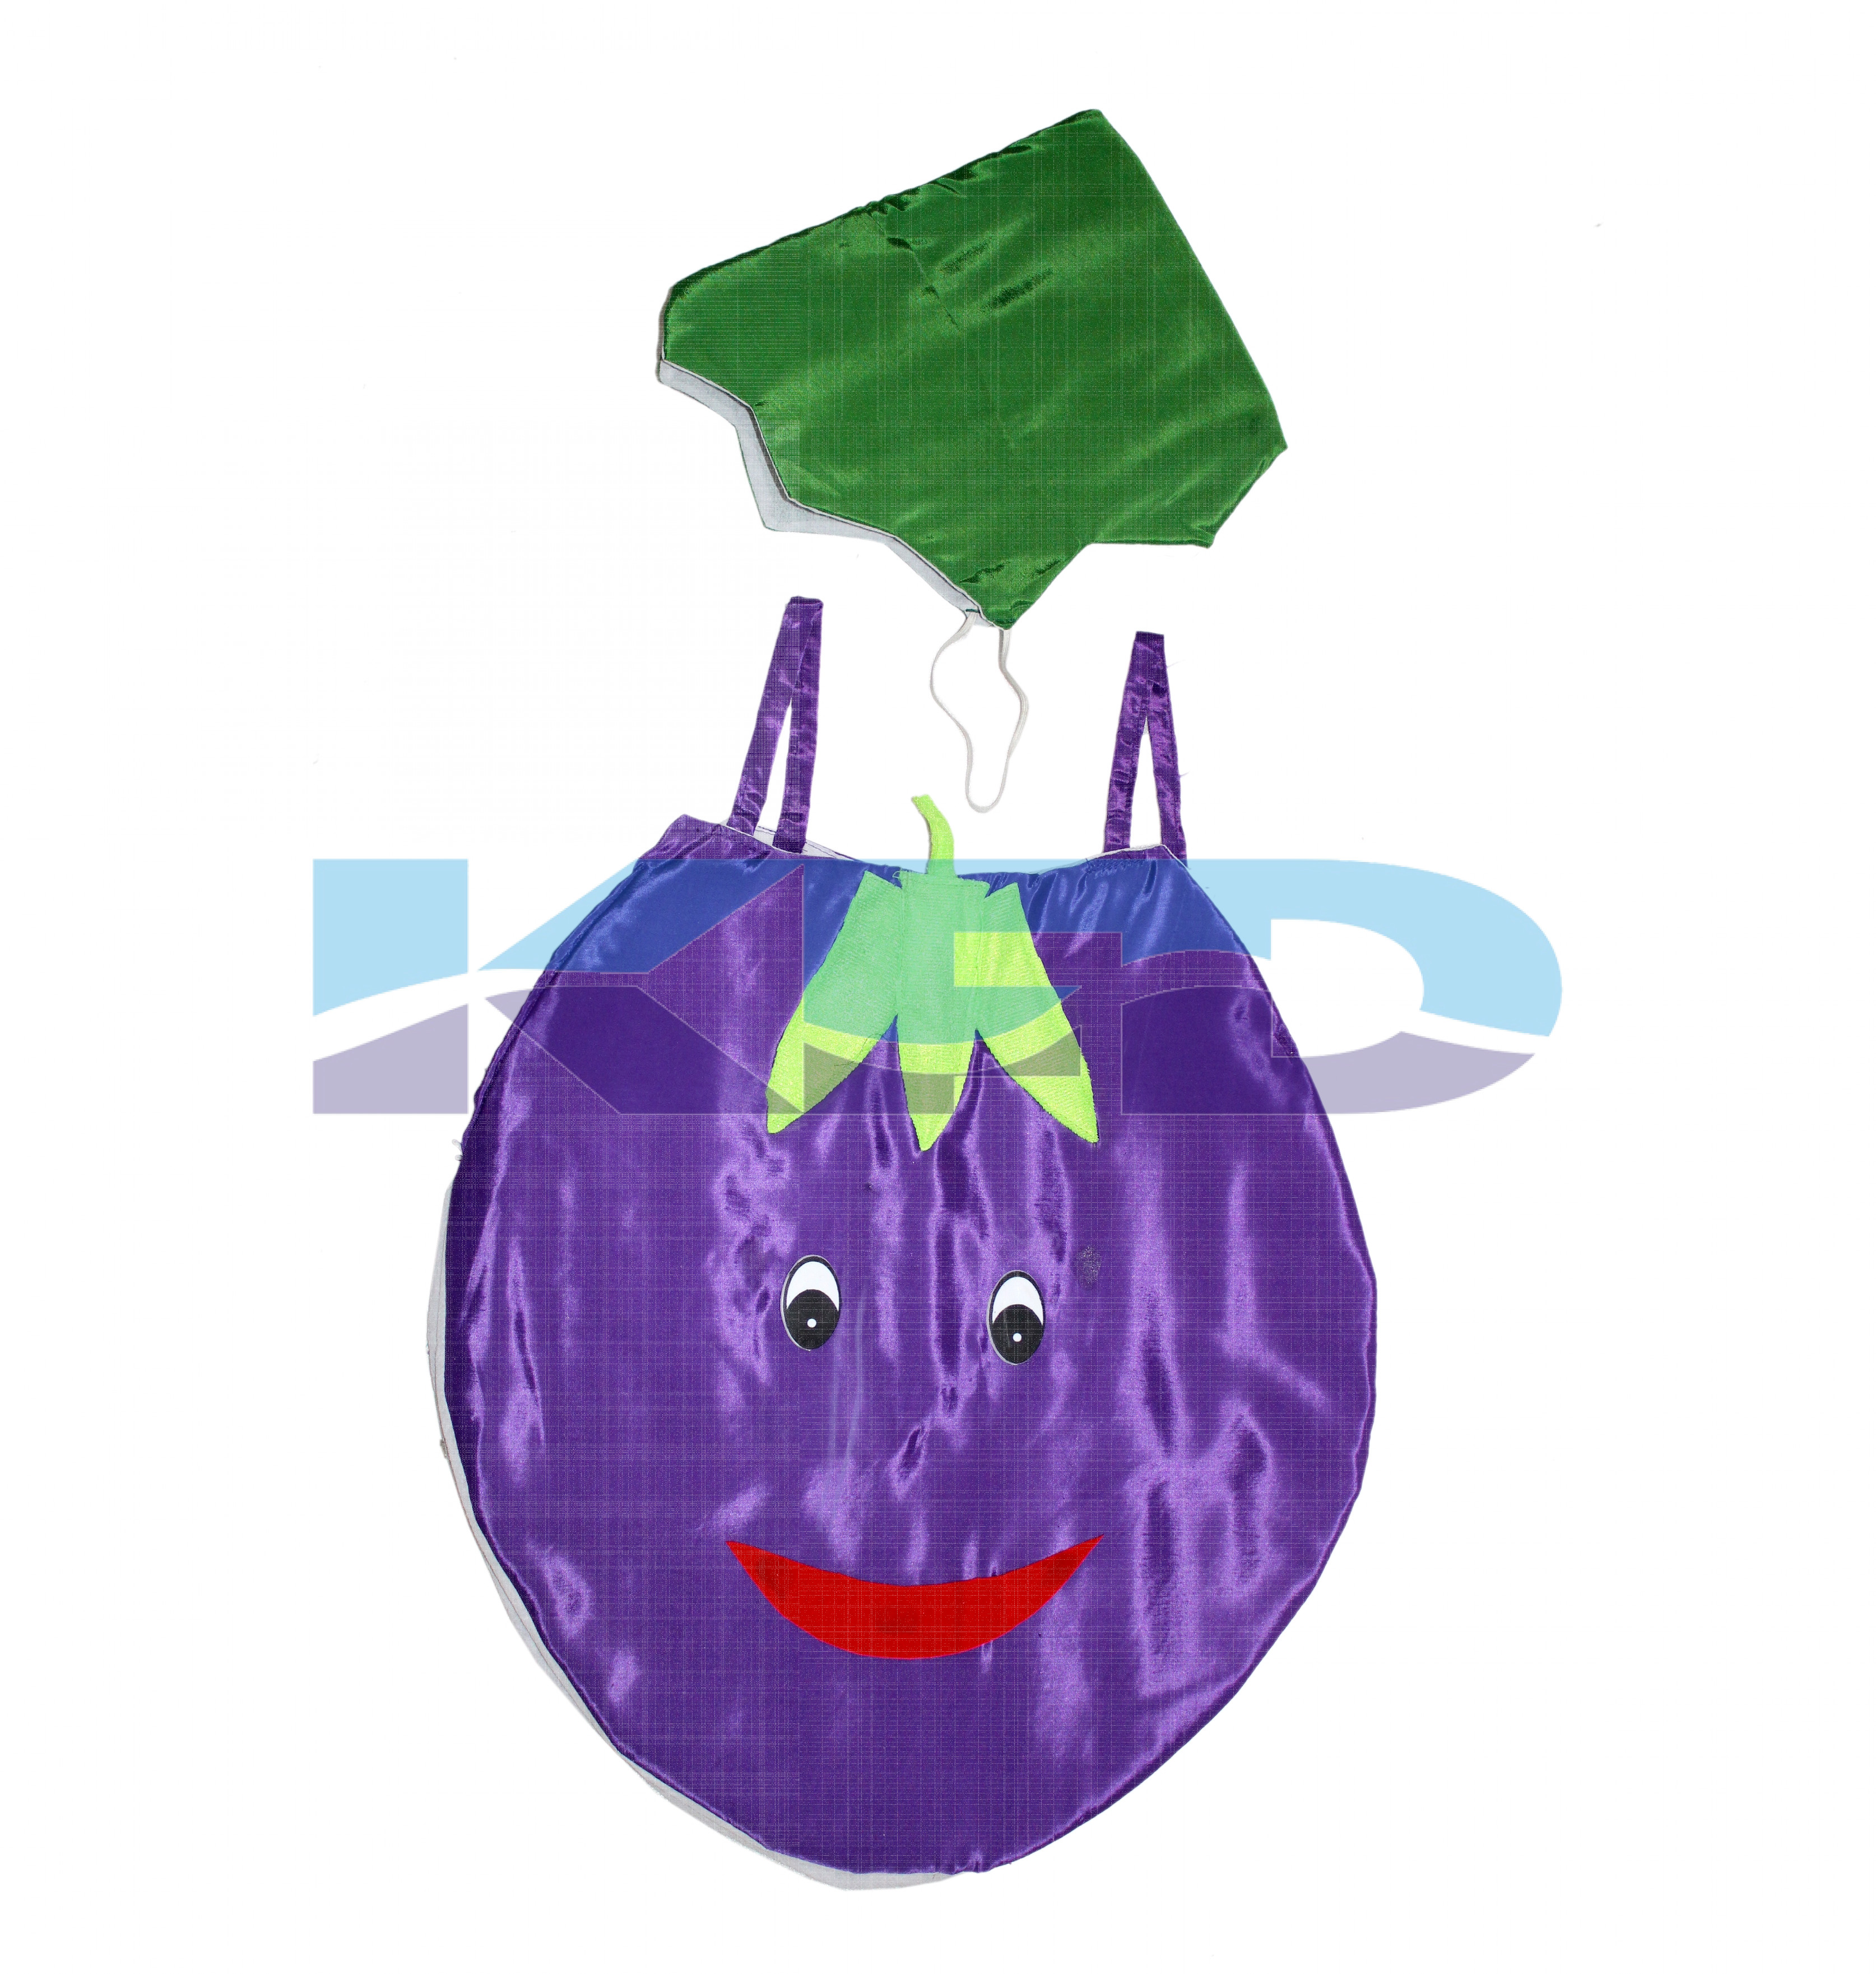 Brinjal Vegetables Costume only cutout with Cap for Annual function/Theme Party/Competition/Stage Shows/Birthday Party Dress